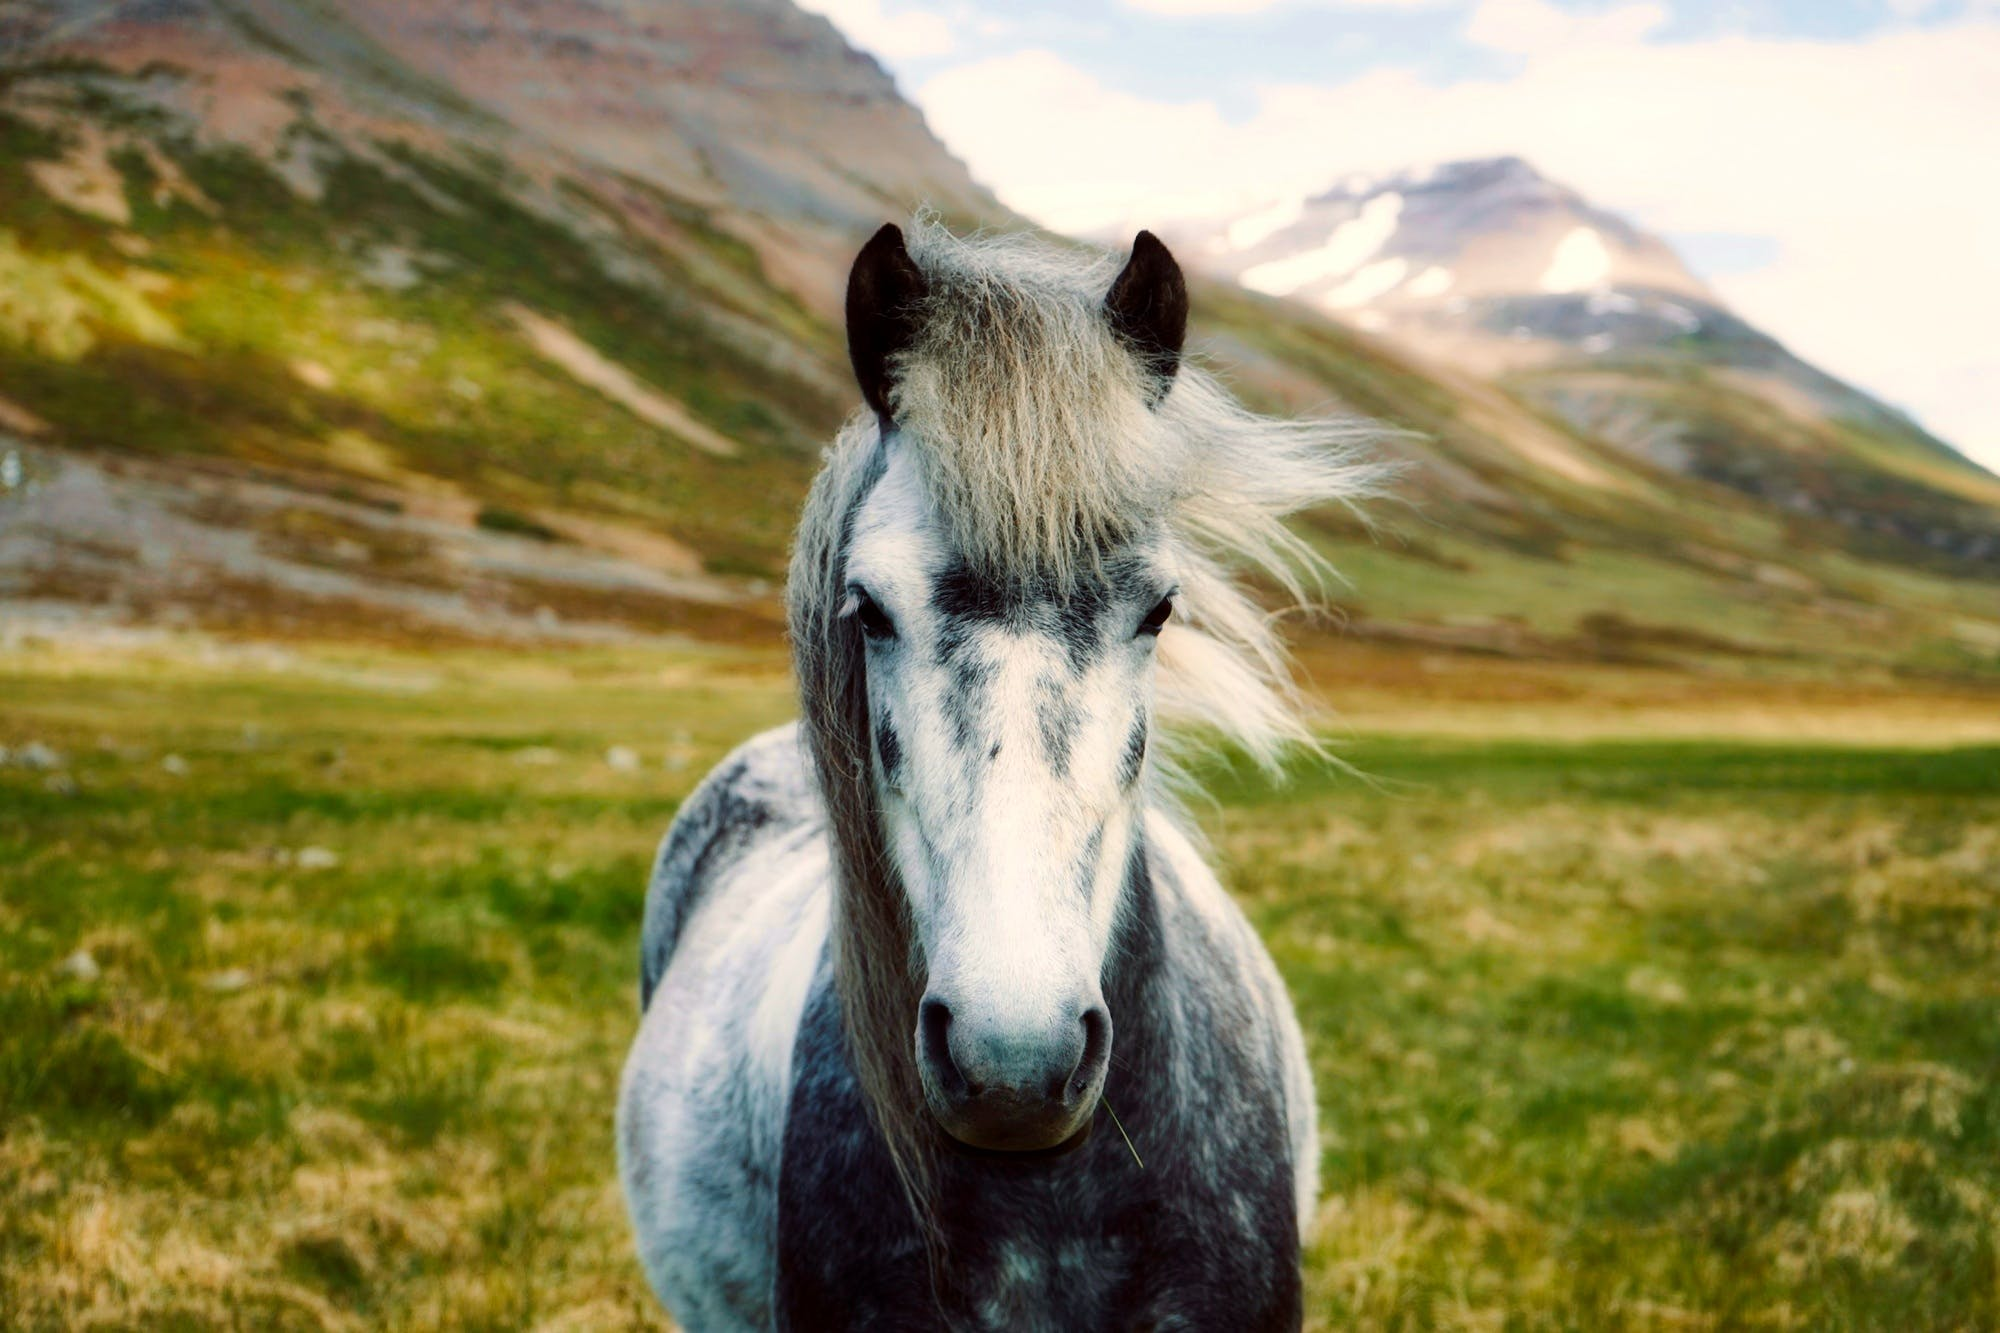 White Horse on Body of Mountain